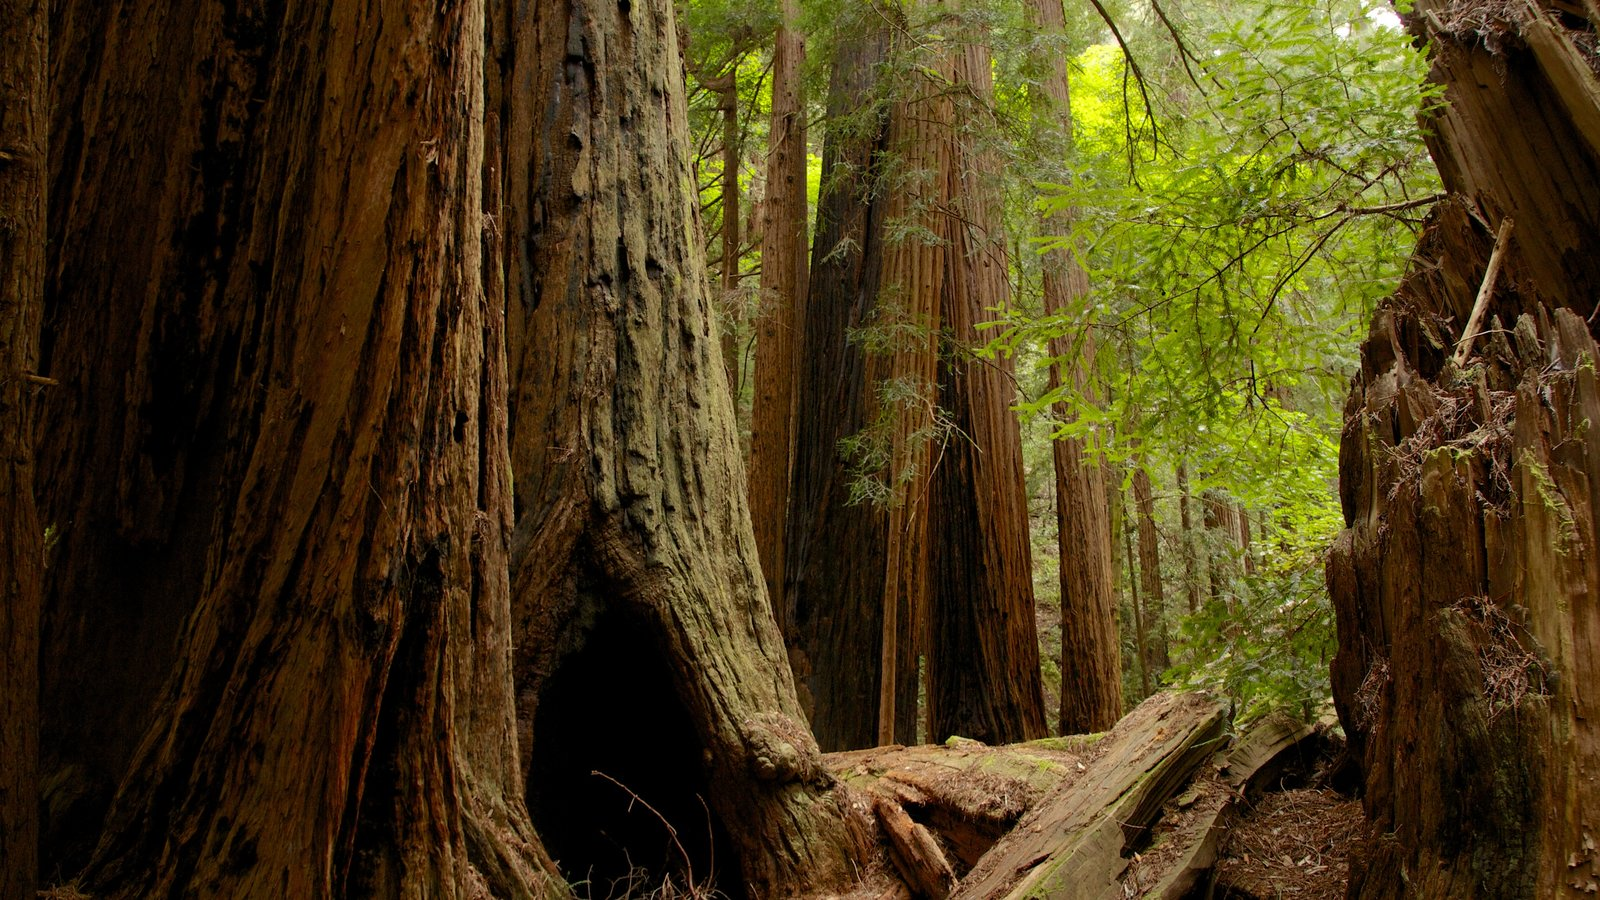 Muir Woods featuring forest scenes